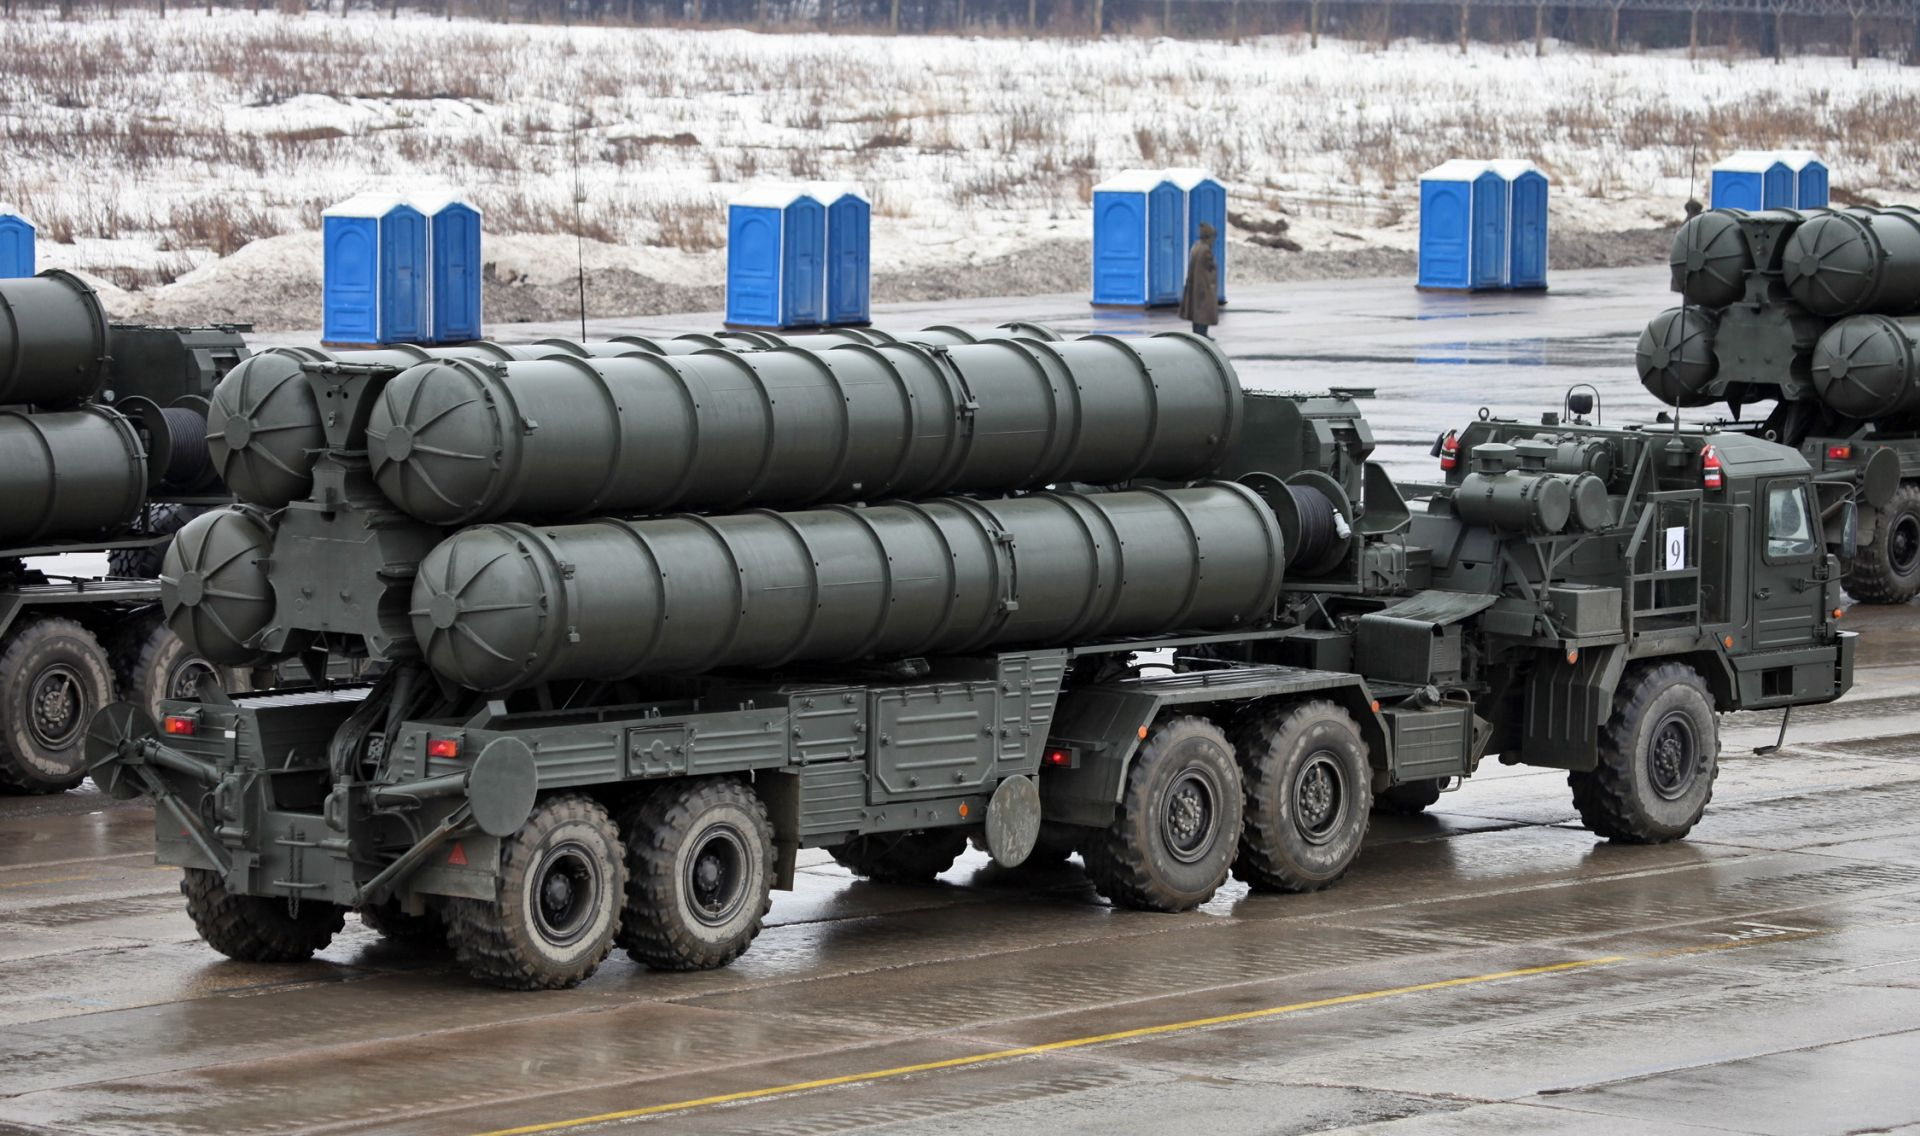 Erdogan: The S-400 purchase deal to be closed within the week